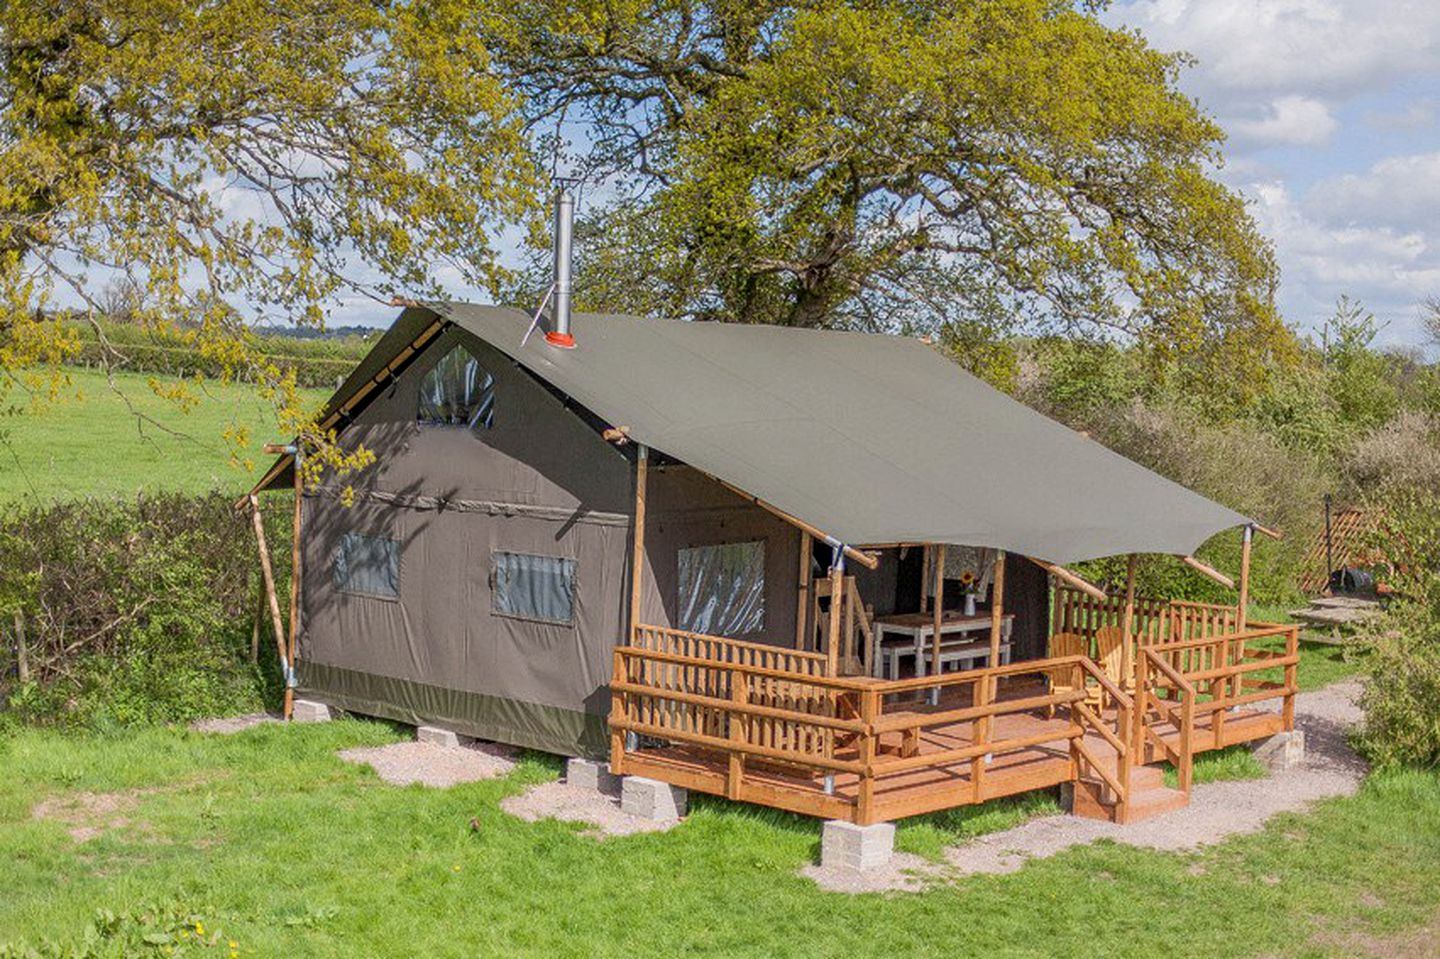 Safari Tents (Wiltshire, England, United Kingdom)